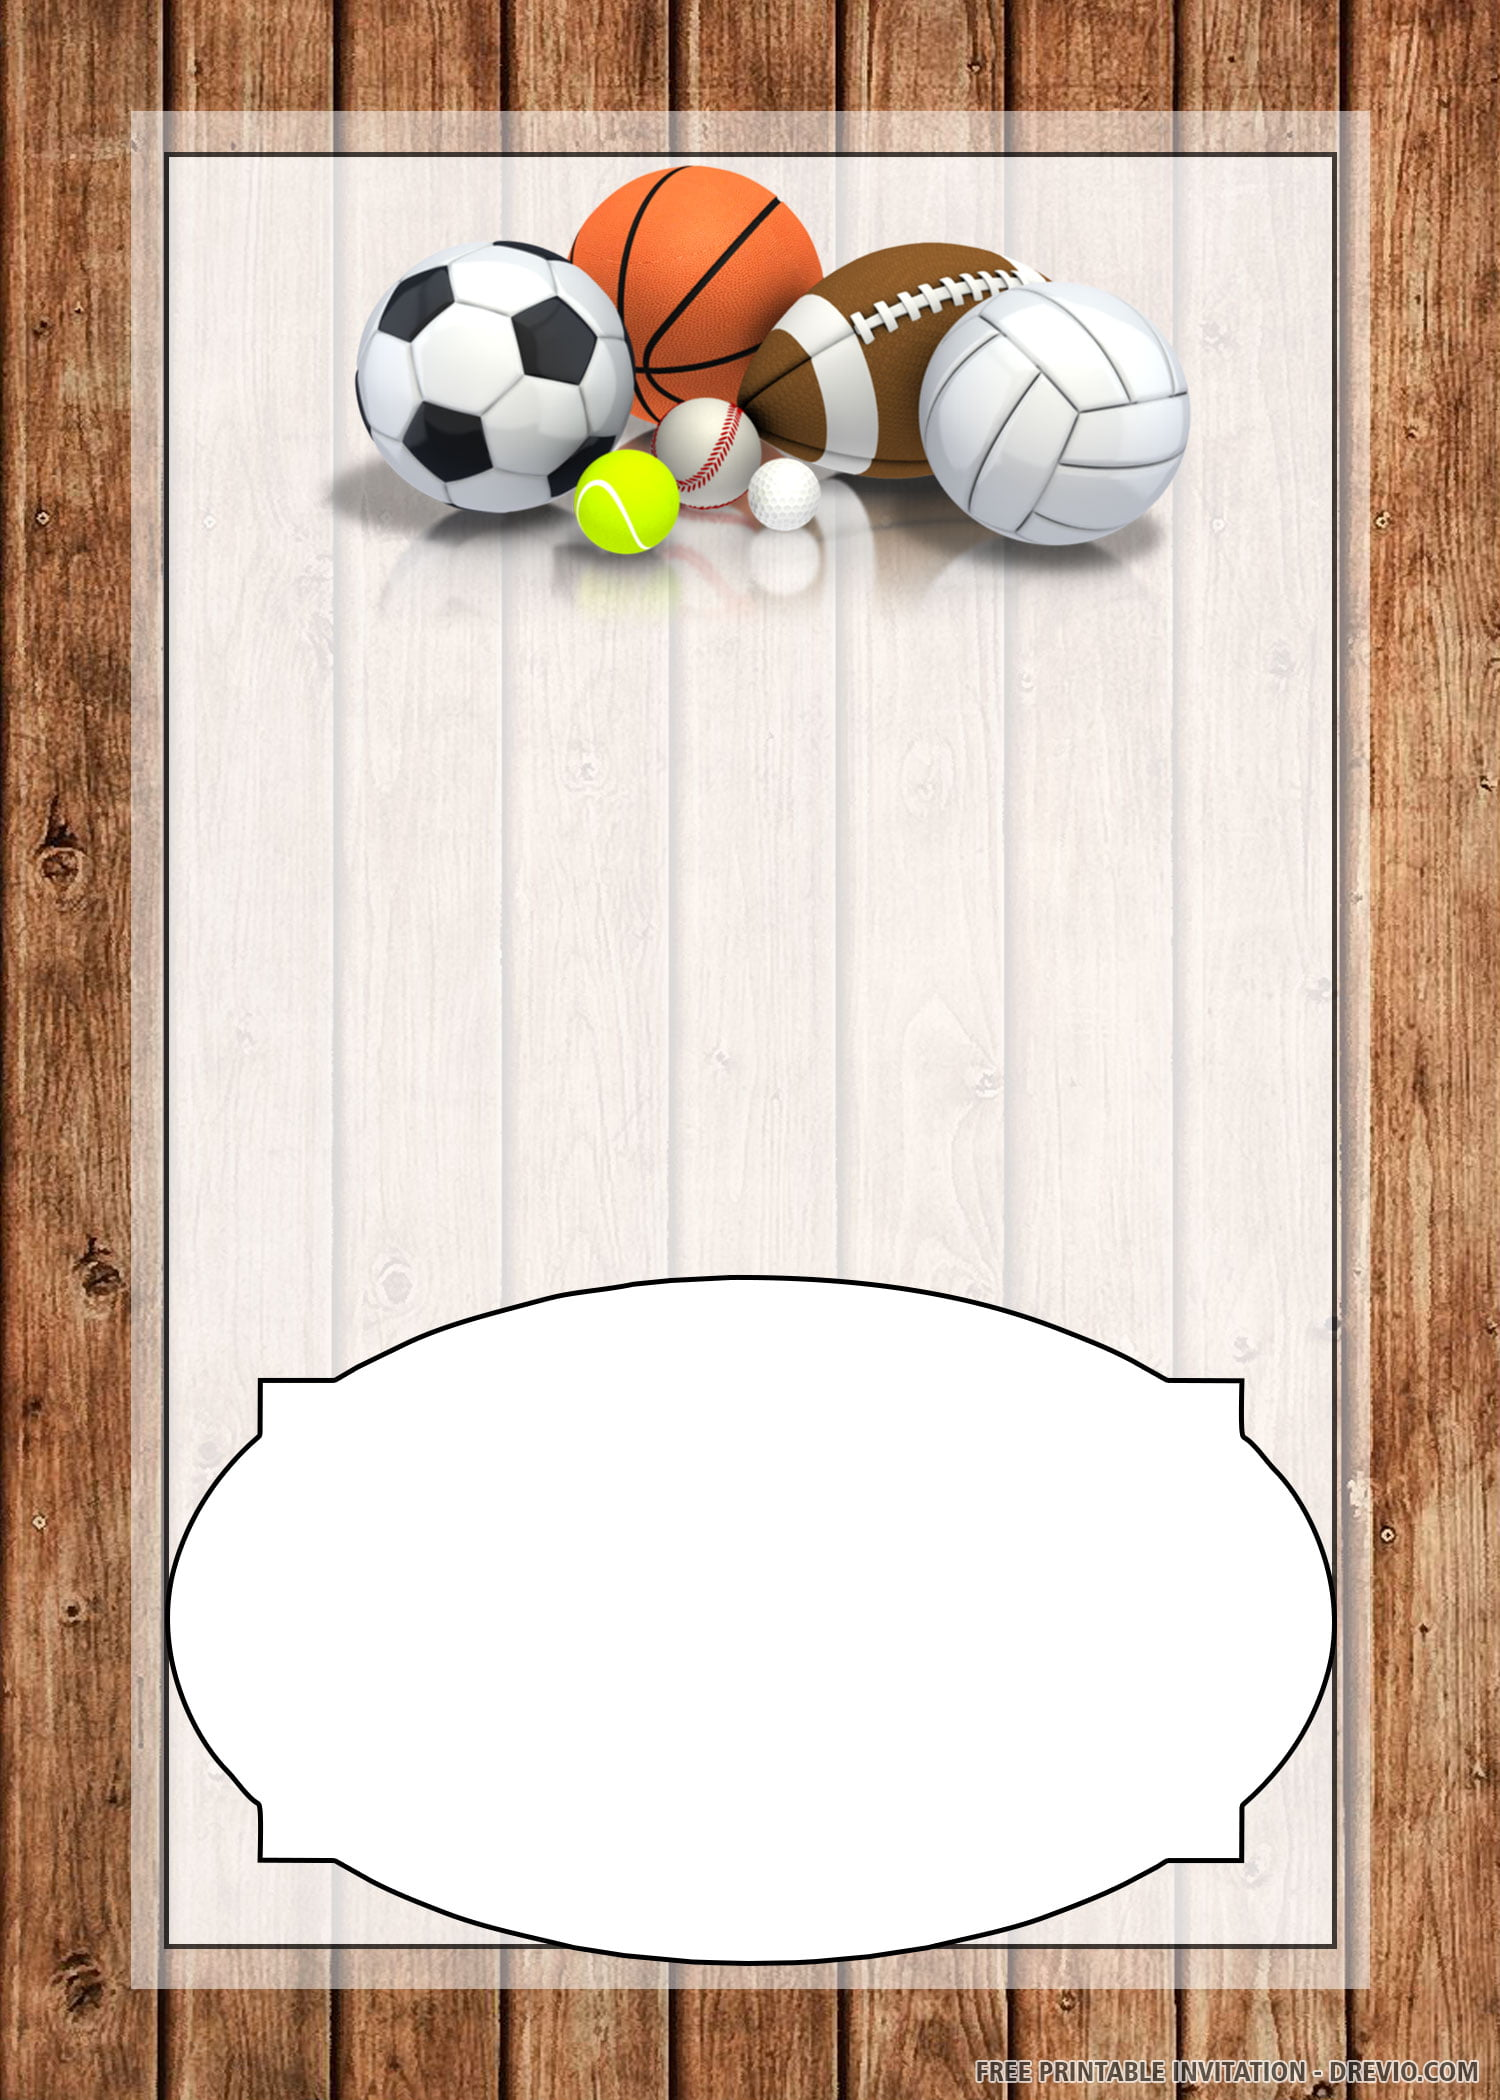 Free Printable Sport Equipment Invitation Template